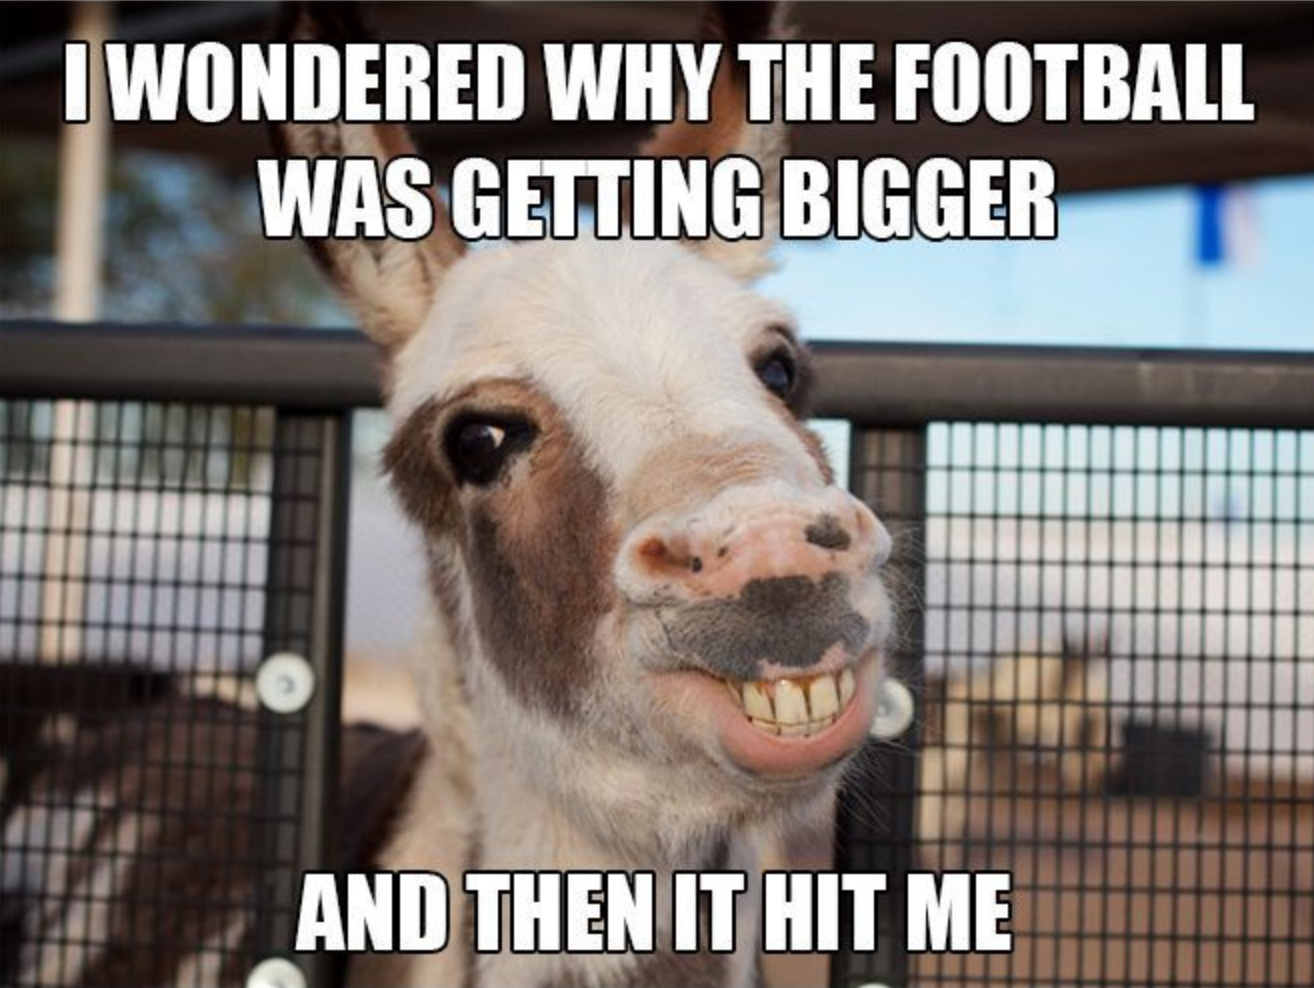 Really Funny Meme Jokes : Esel football getting bigger ball hit me animal meme memes